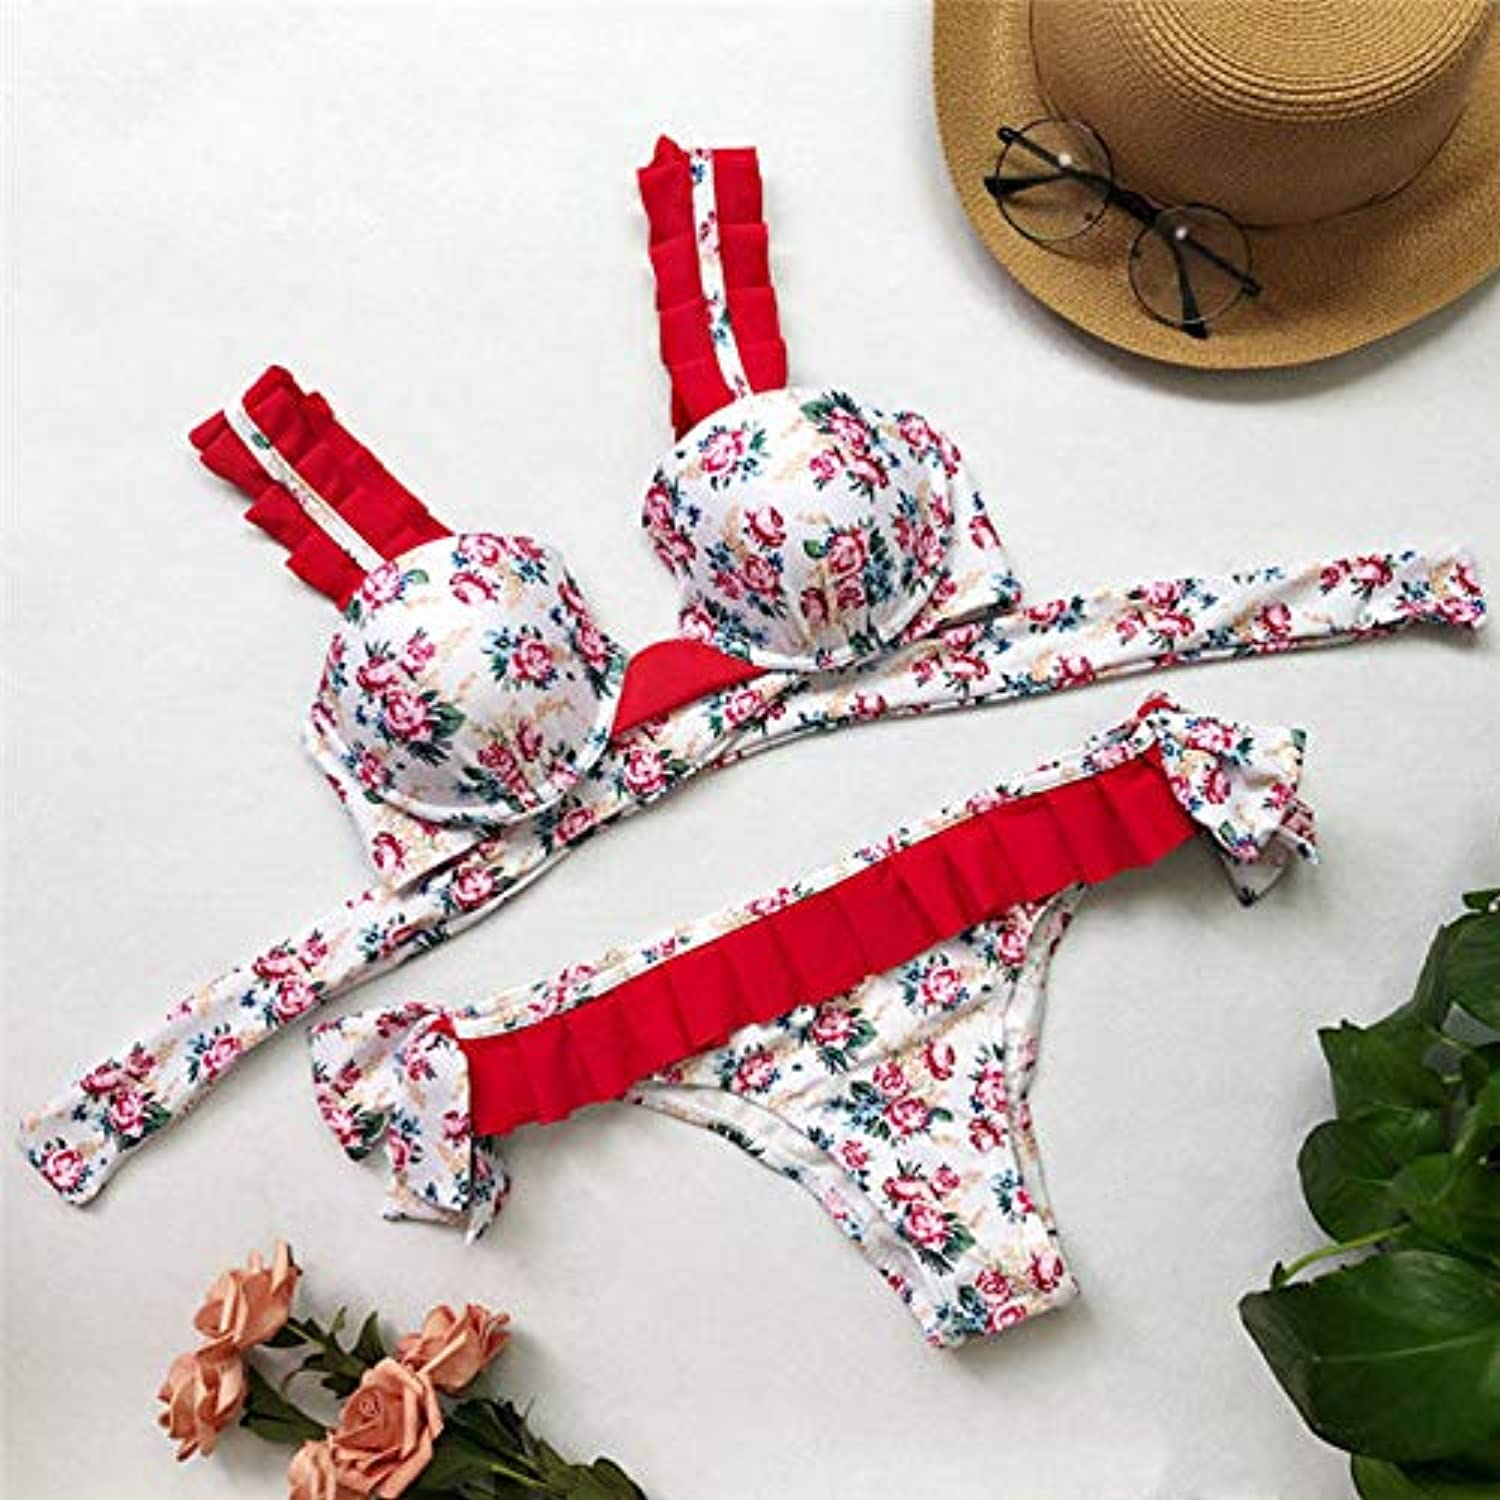 HITSAN Hot Push up Bow Bikini 2018 Female Print Lace Swimsuit Women Swimwear Two-Pieces Bikini Set Bather Bathing Suit Swim Lady color White Size S